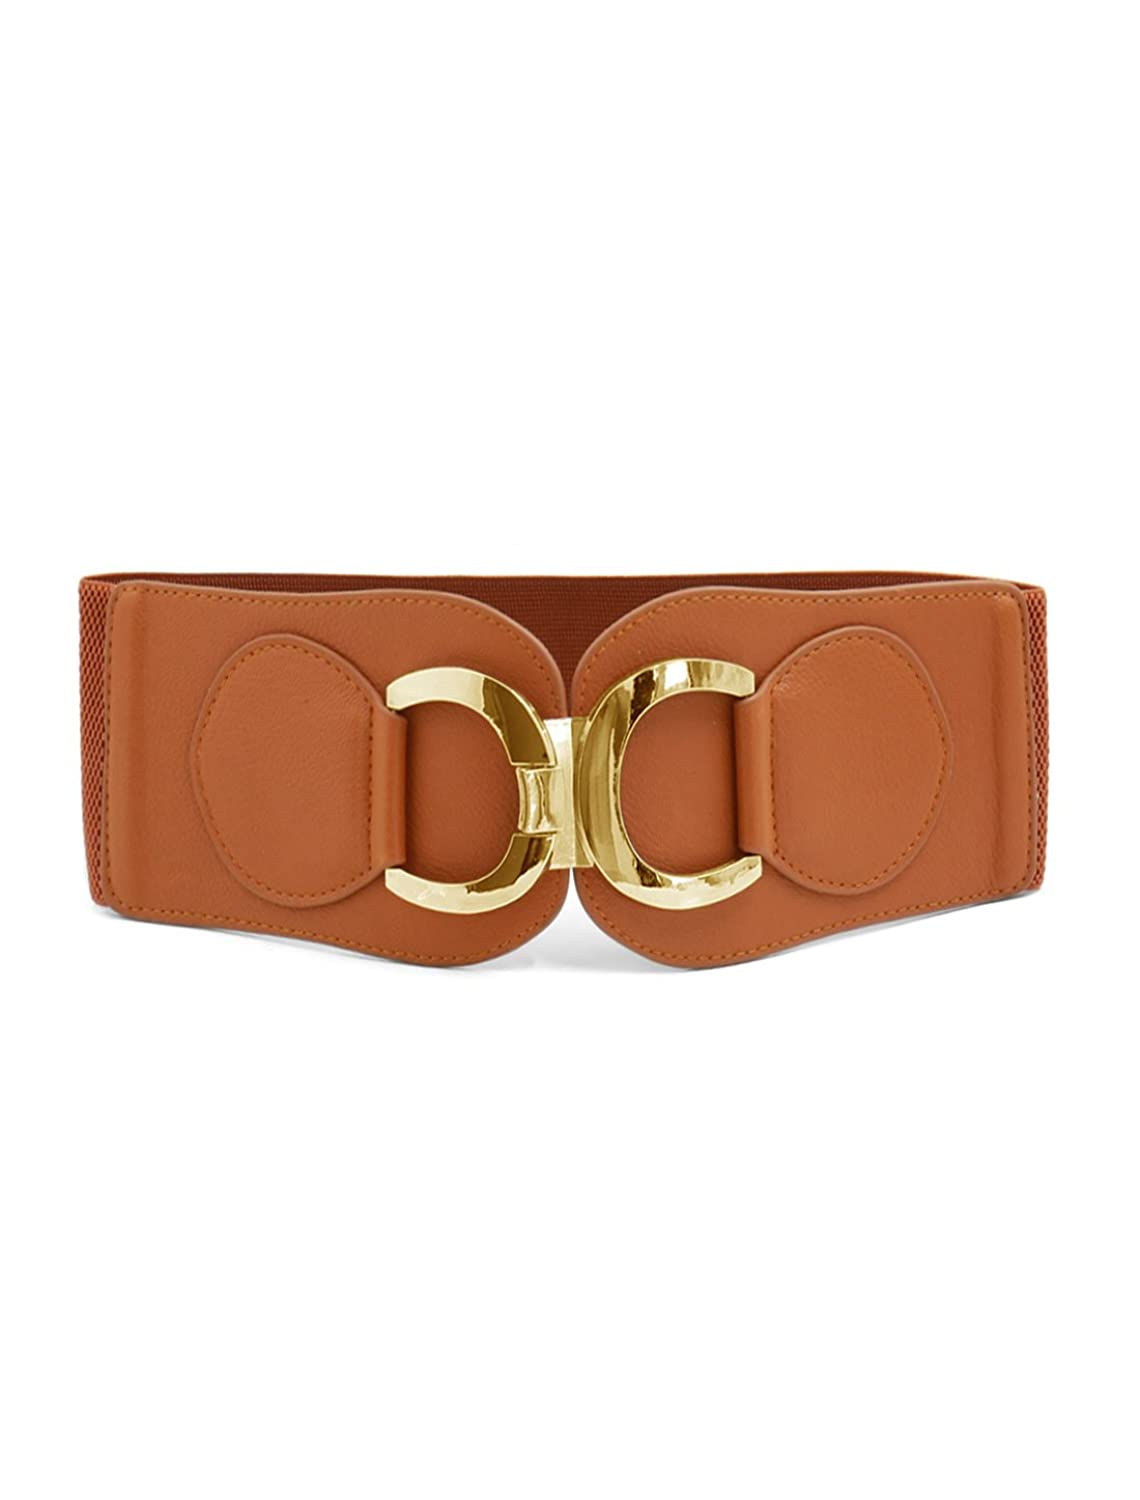 Woman Gold Tone Double D Ring Buckle Brown Wide Elastic Belt